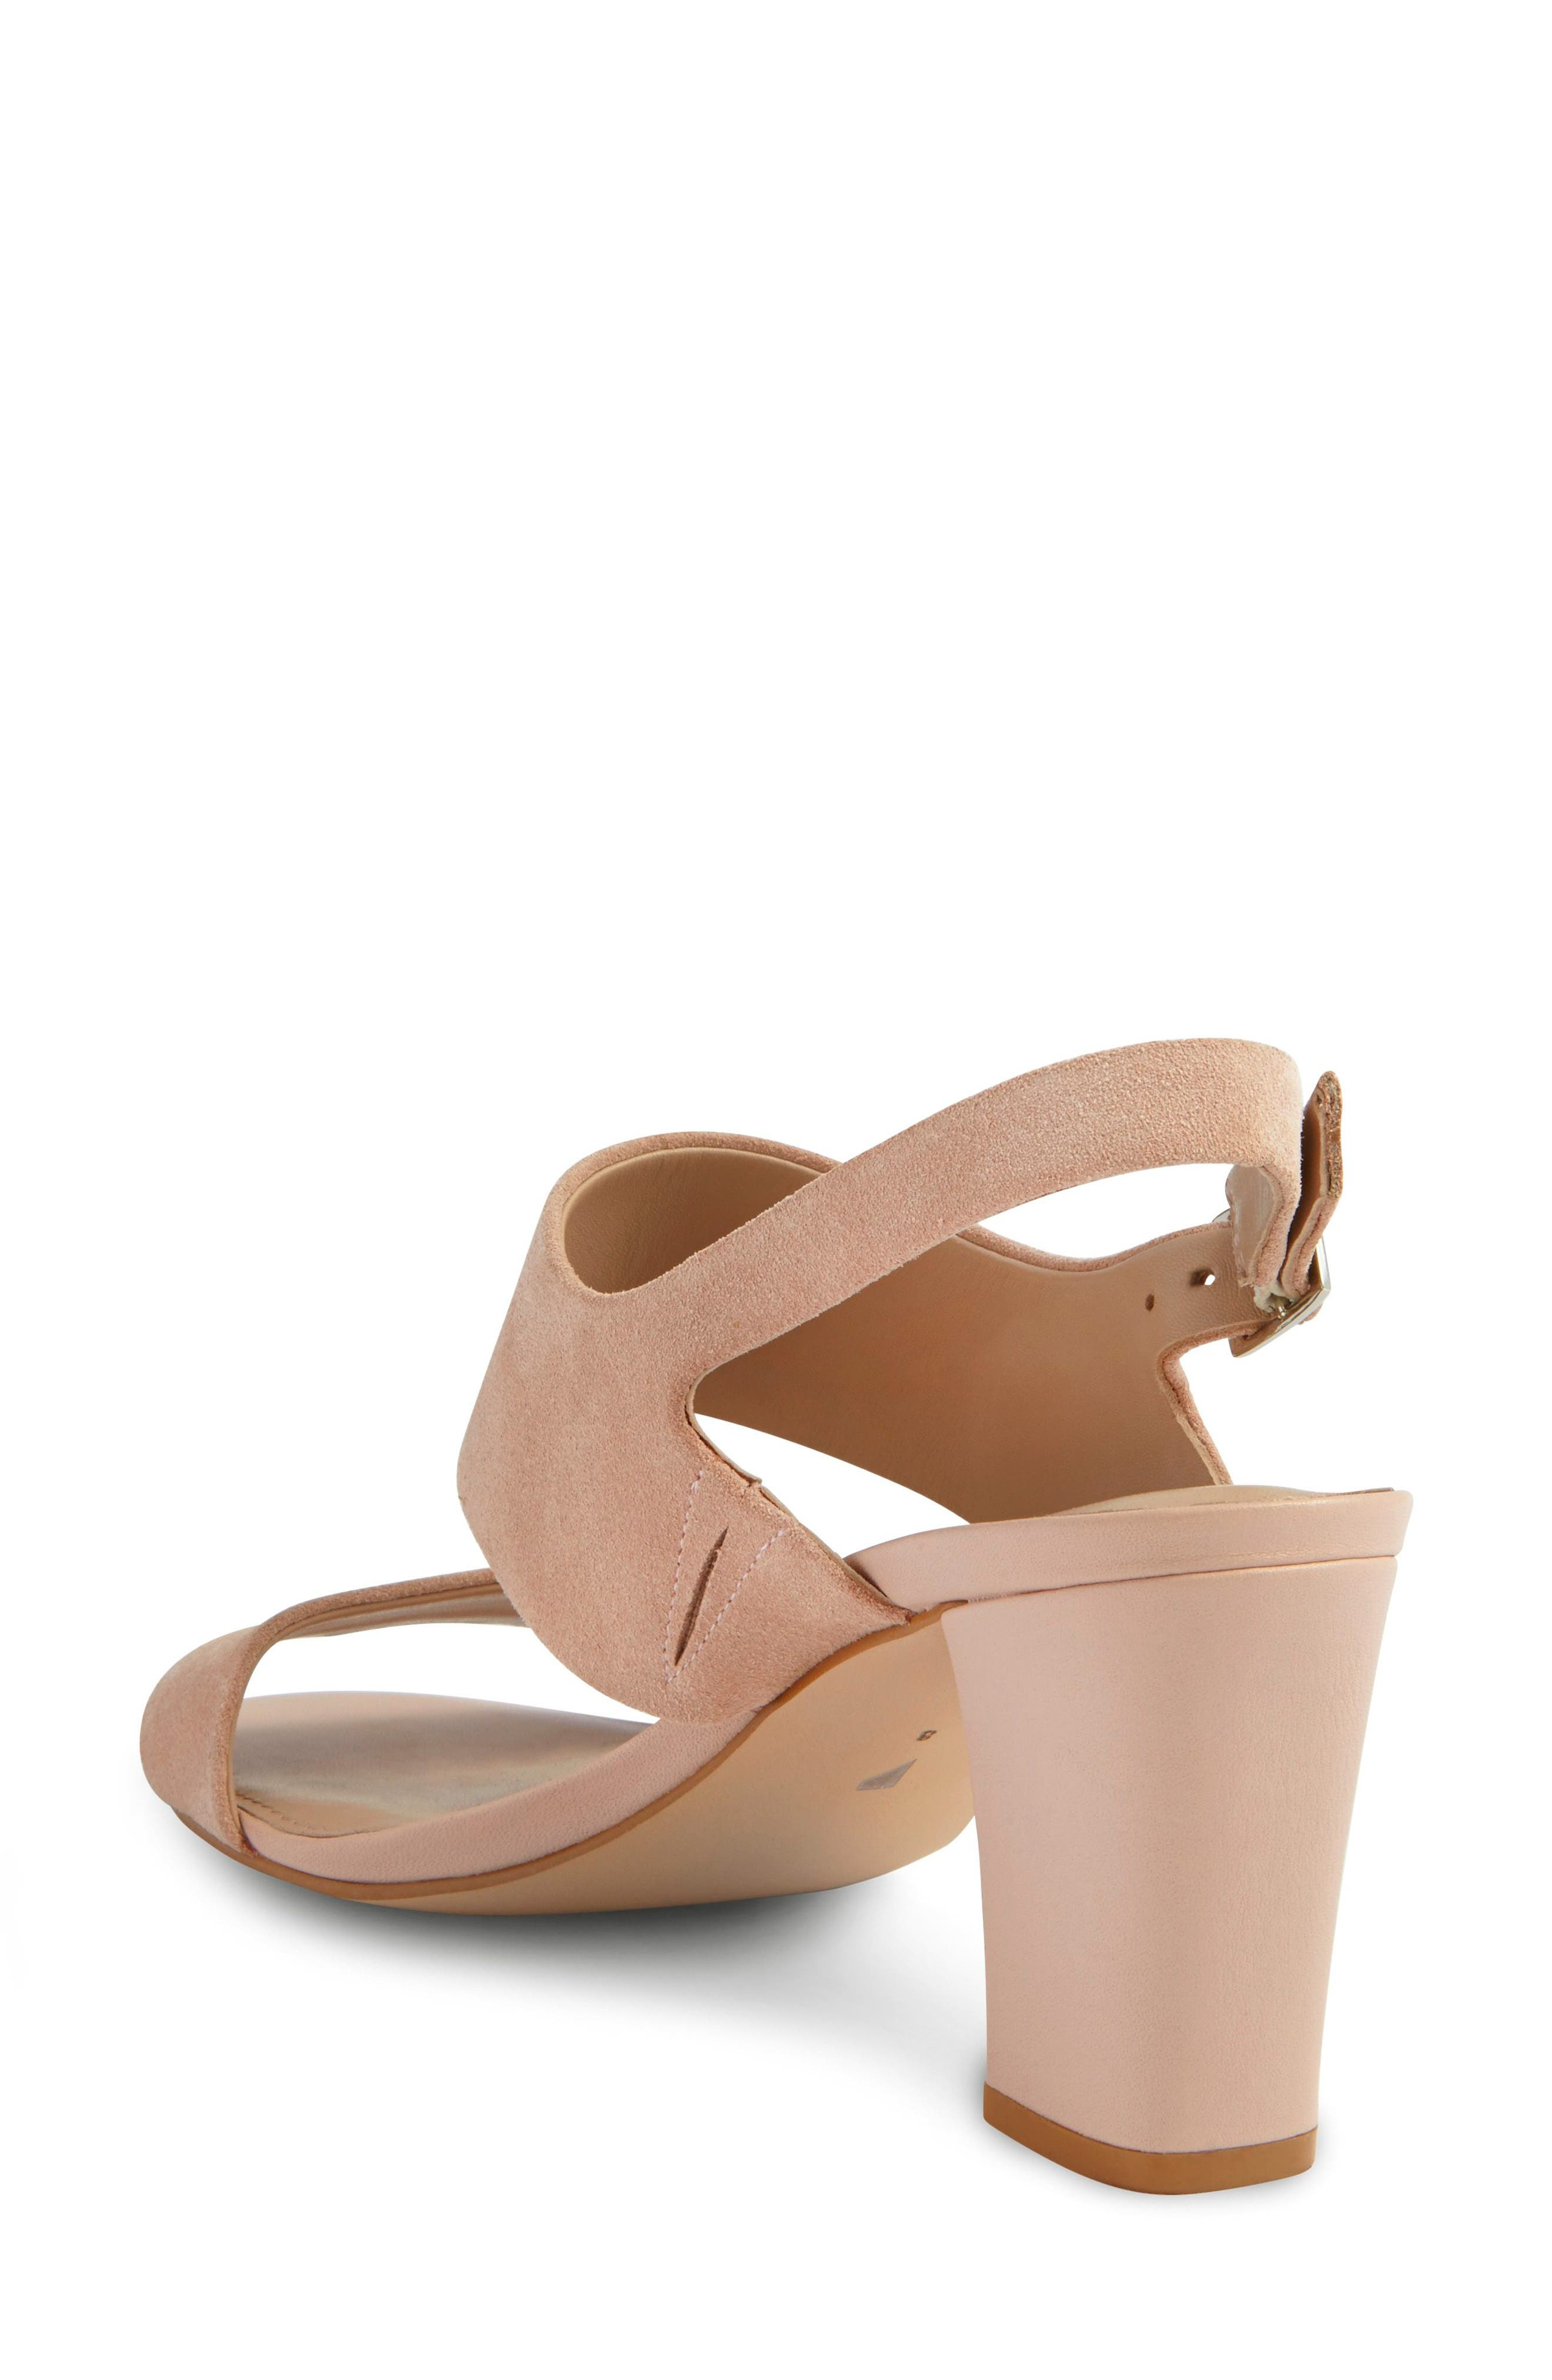 Strappy Sandal,                             Alternate thumbnail 2, color,                             Blush Nude Suede